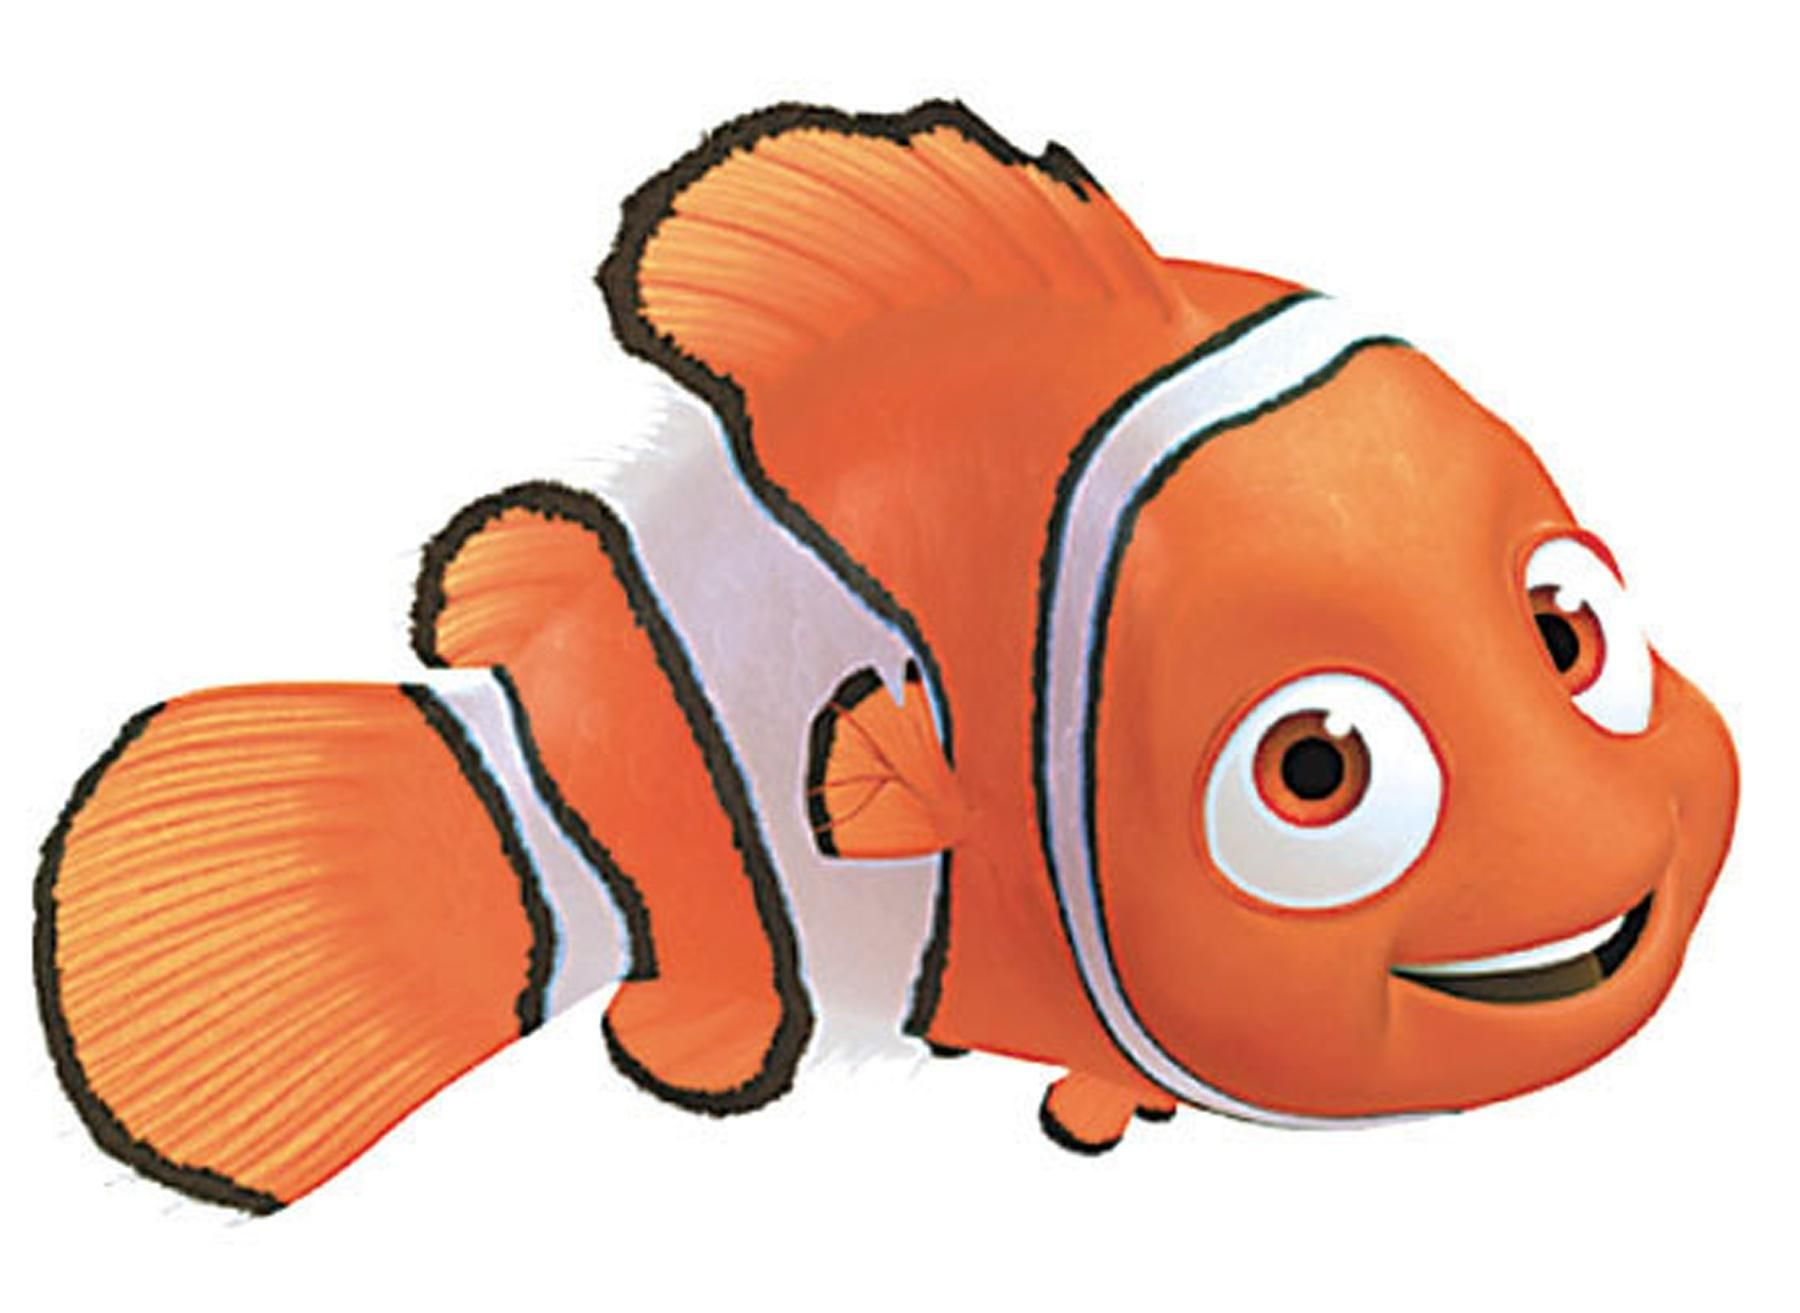 Nemo clipart finding nemo. This is best dory